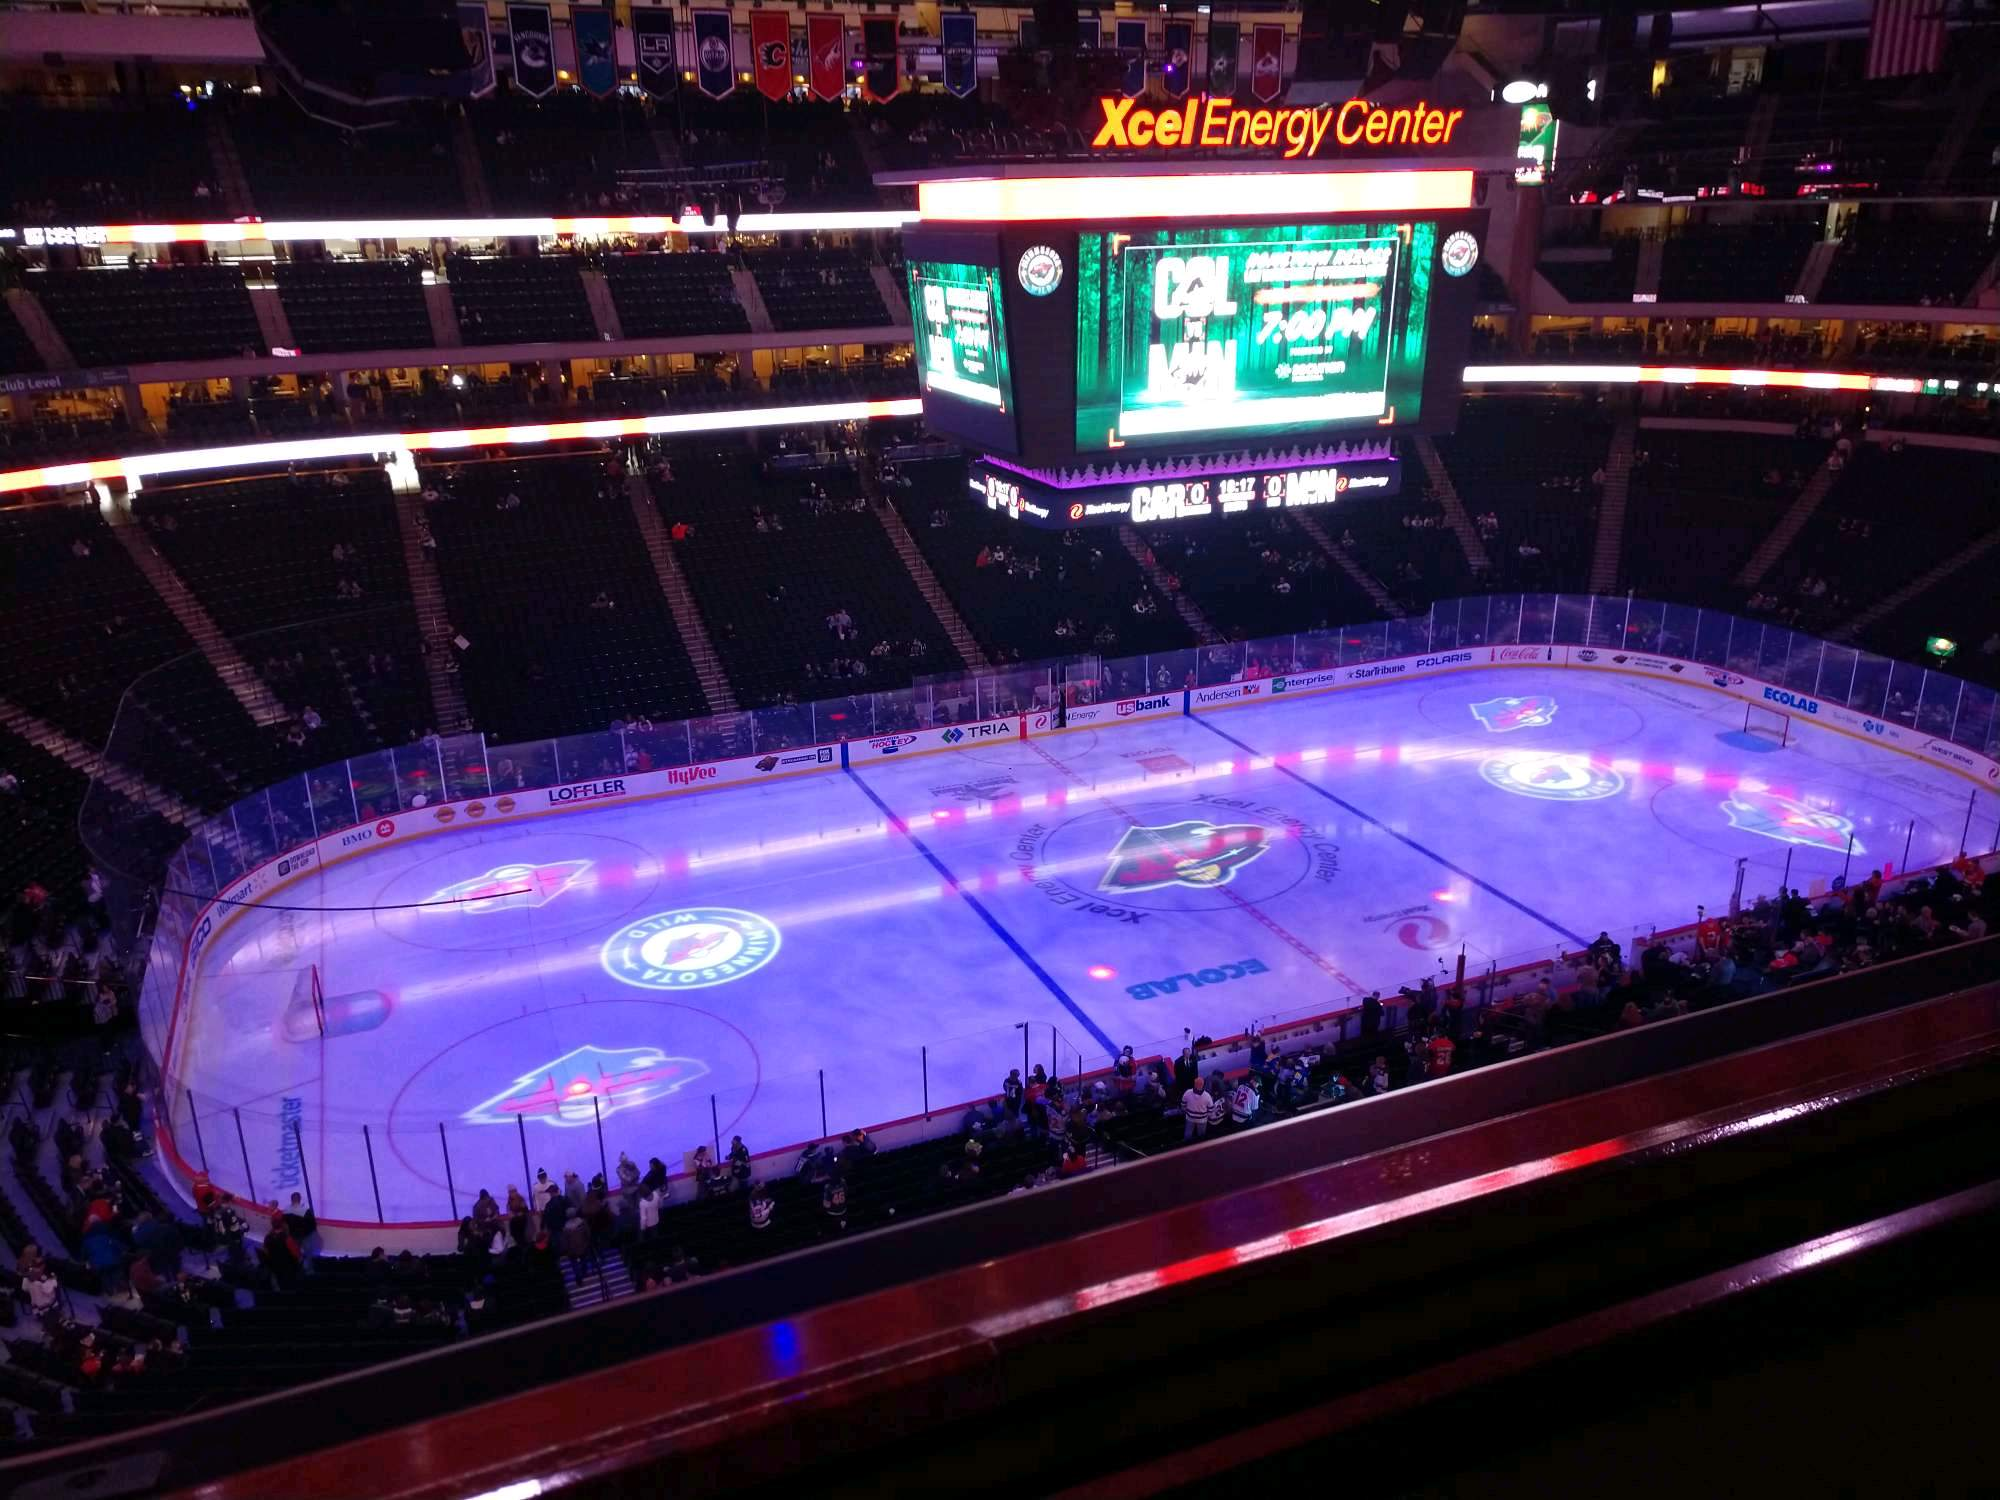 Xcel Energy Center Section 221 Row 1 Seat 15